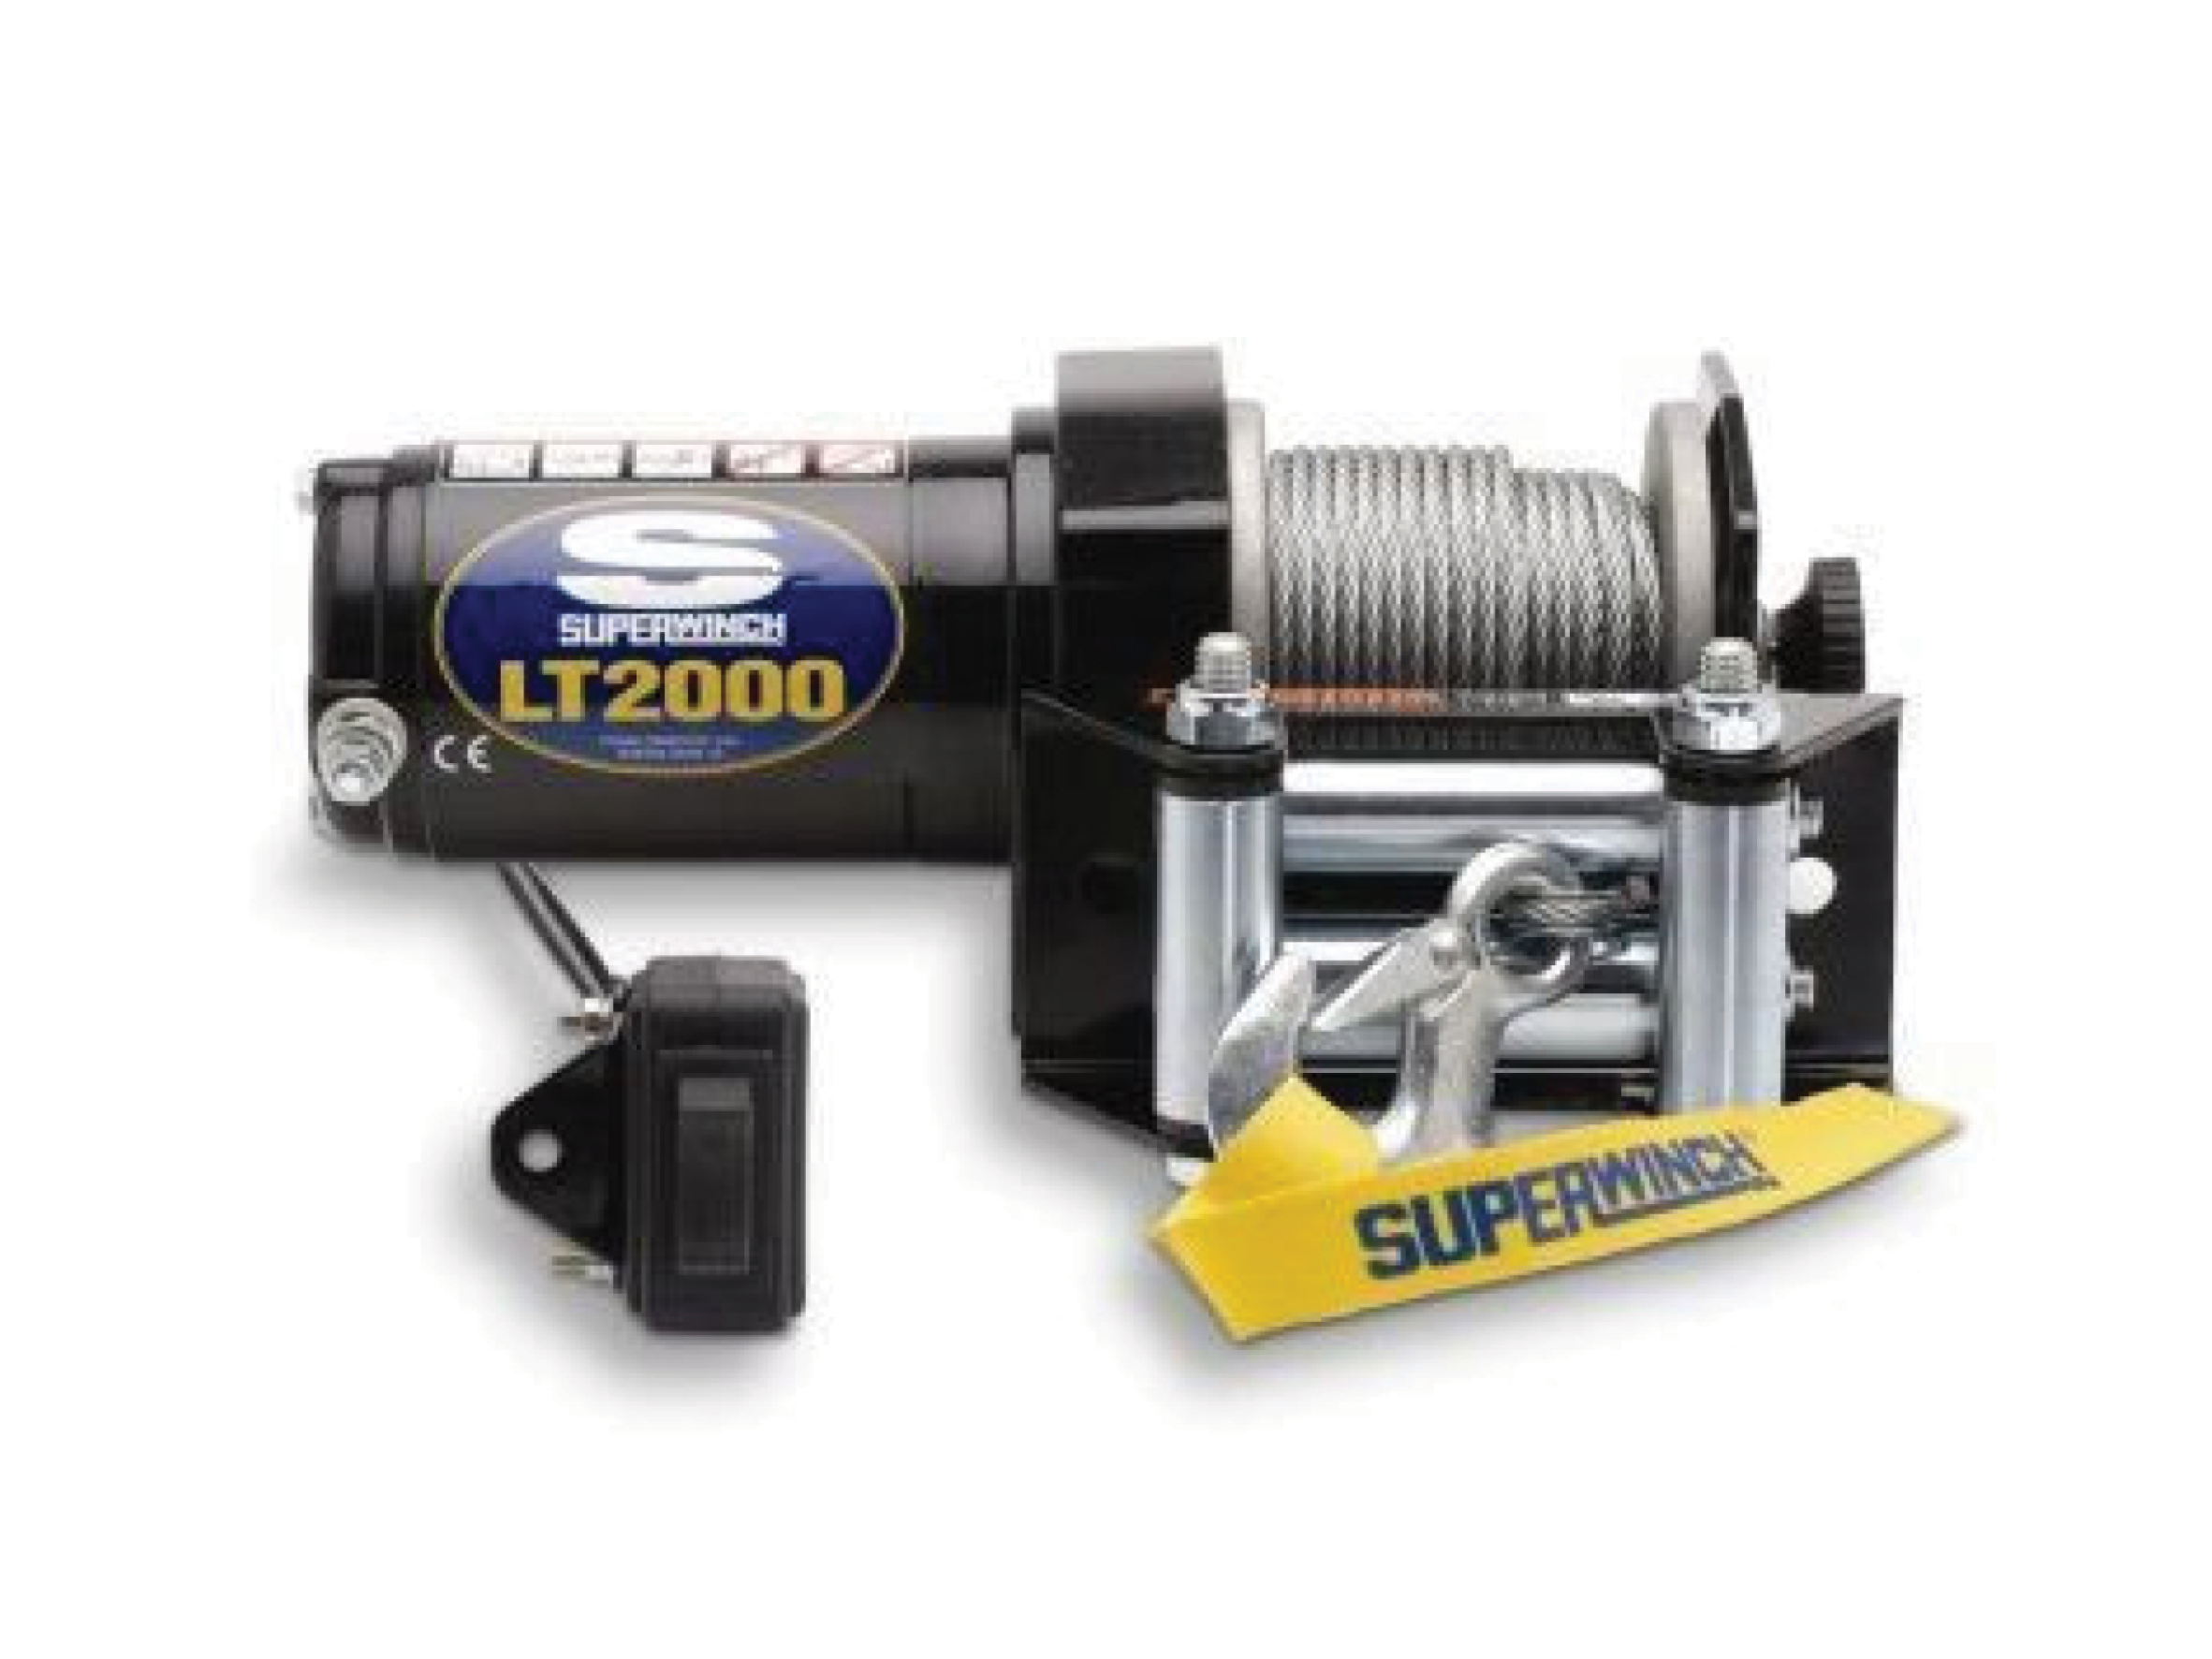 Alltracks Superwinch LT 2000 Electric winch with wire cable